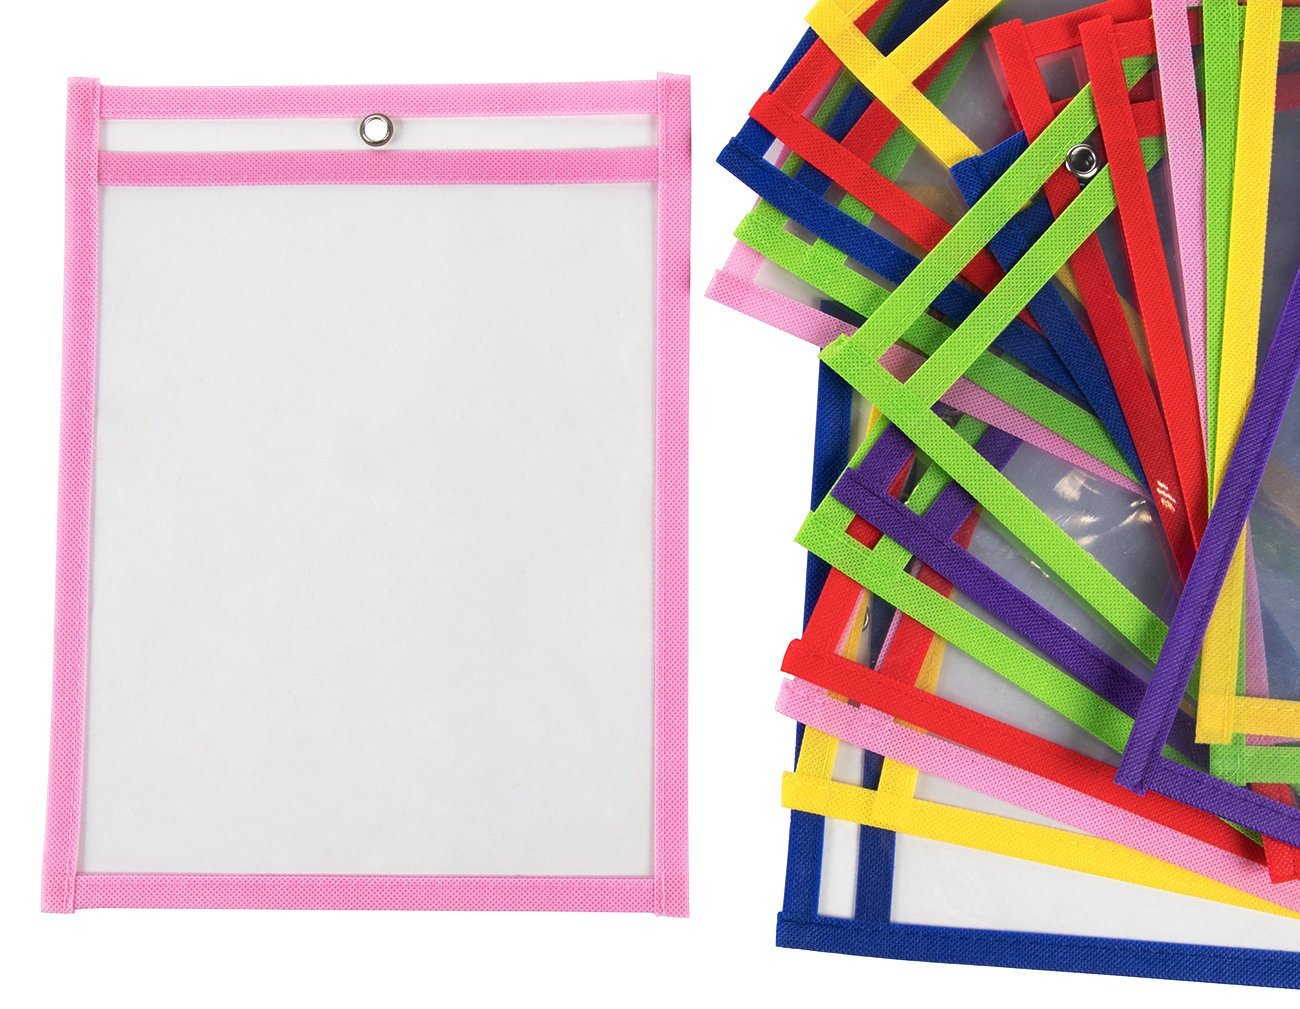 Dry Erase Pockets - 36-Pack Reusable Plastic Sheet Protectors, Shop Ticket Holders for Office, Classroom, School, Education Supplies, 6 of Each 6 Colors, 11.5 x 13.2 x 2.5 inches